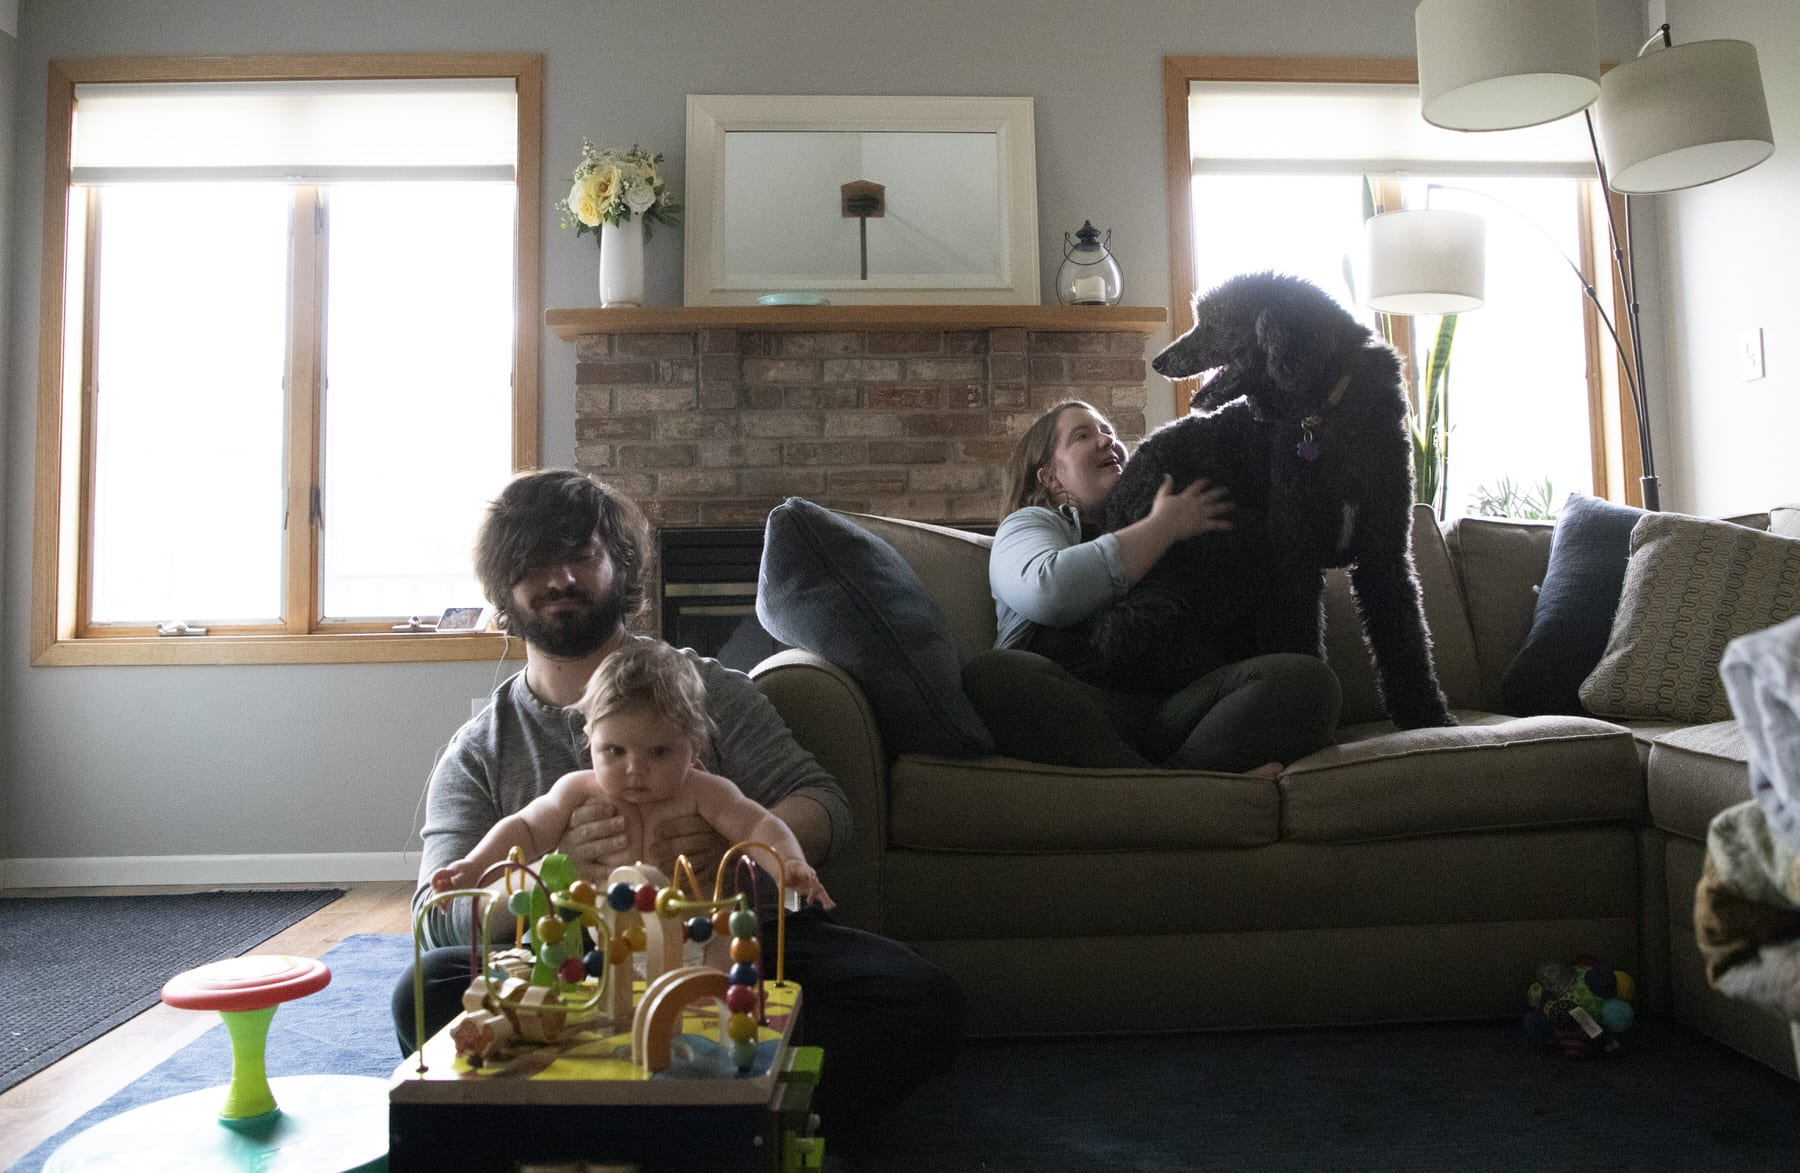 A family visits in their living room.